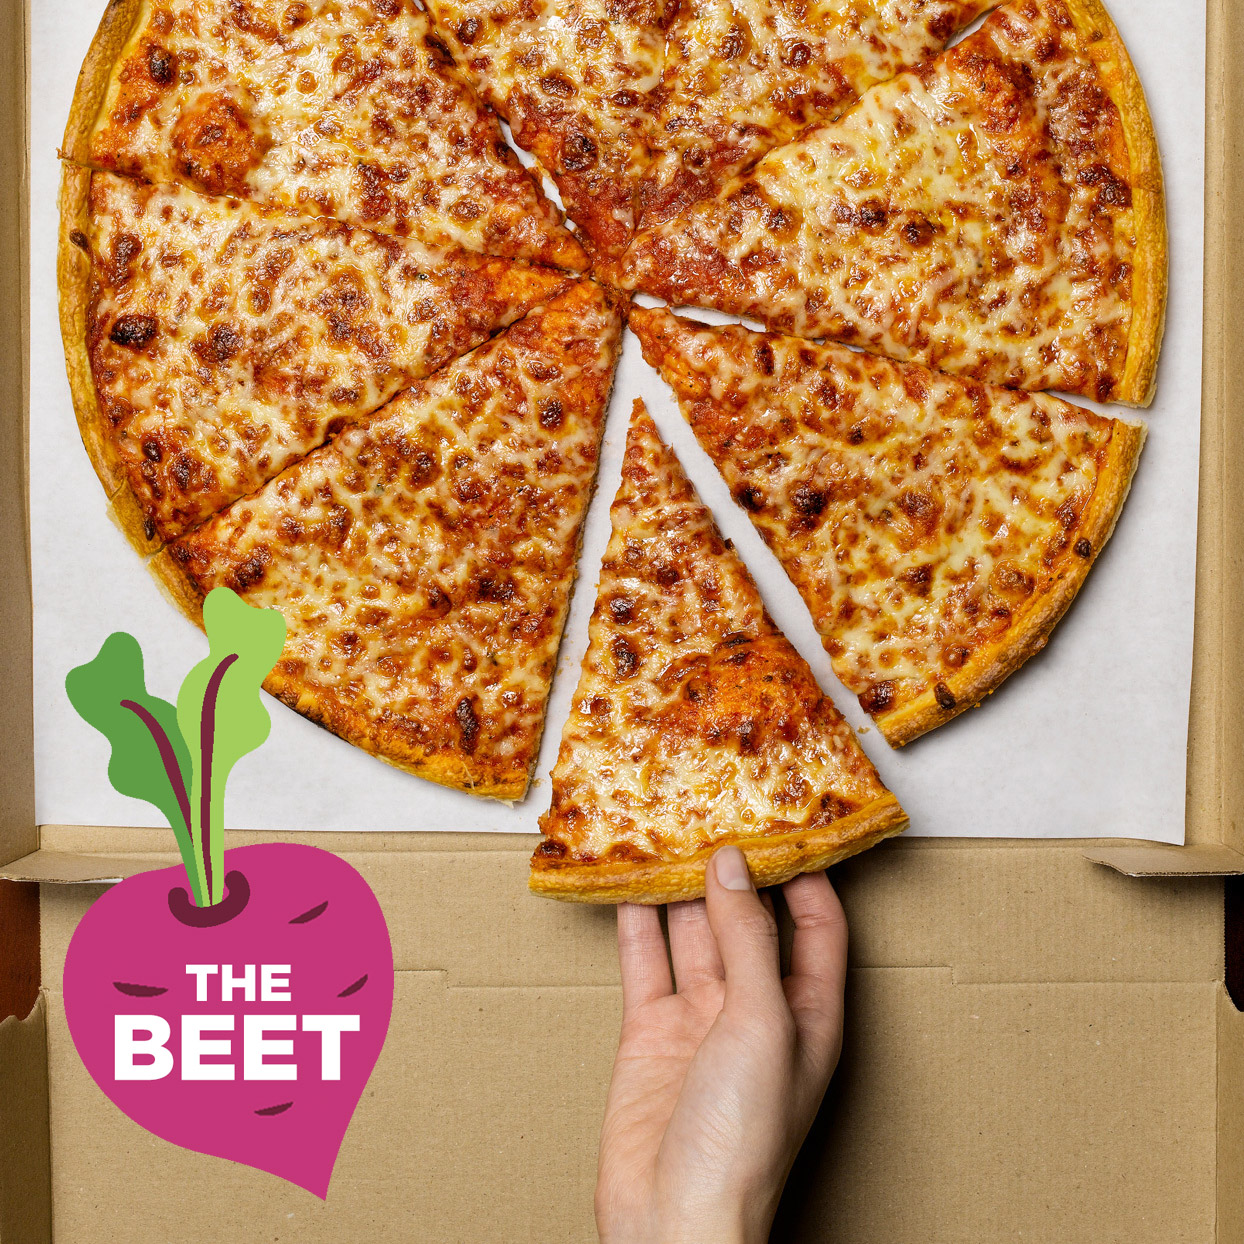 woman grabbing slice of cheese pizza from pizza box - The Beet